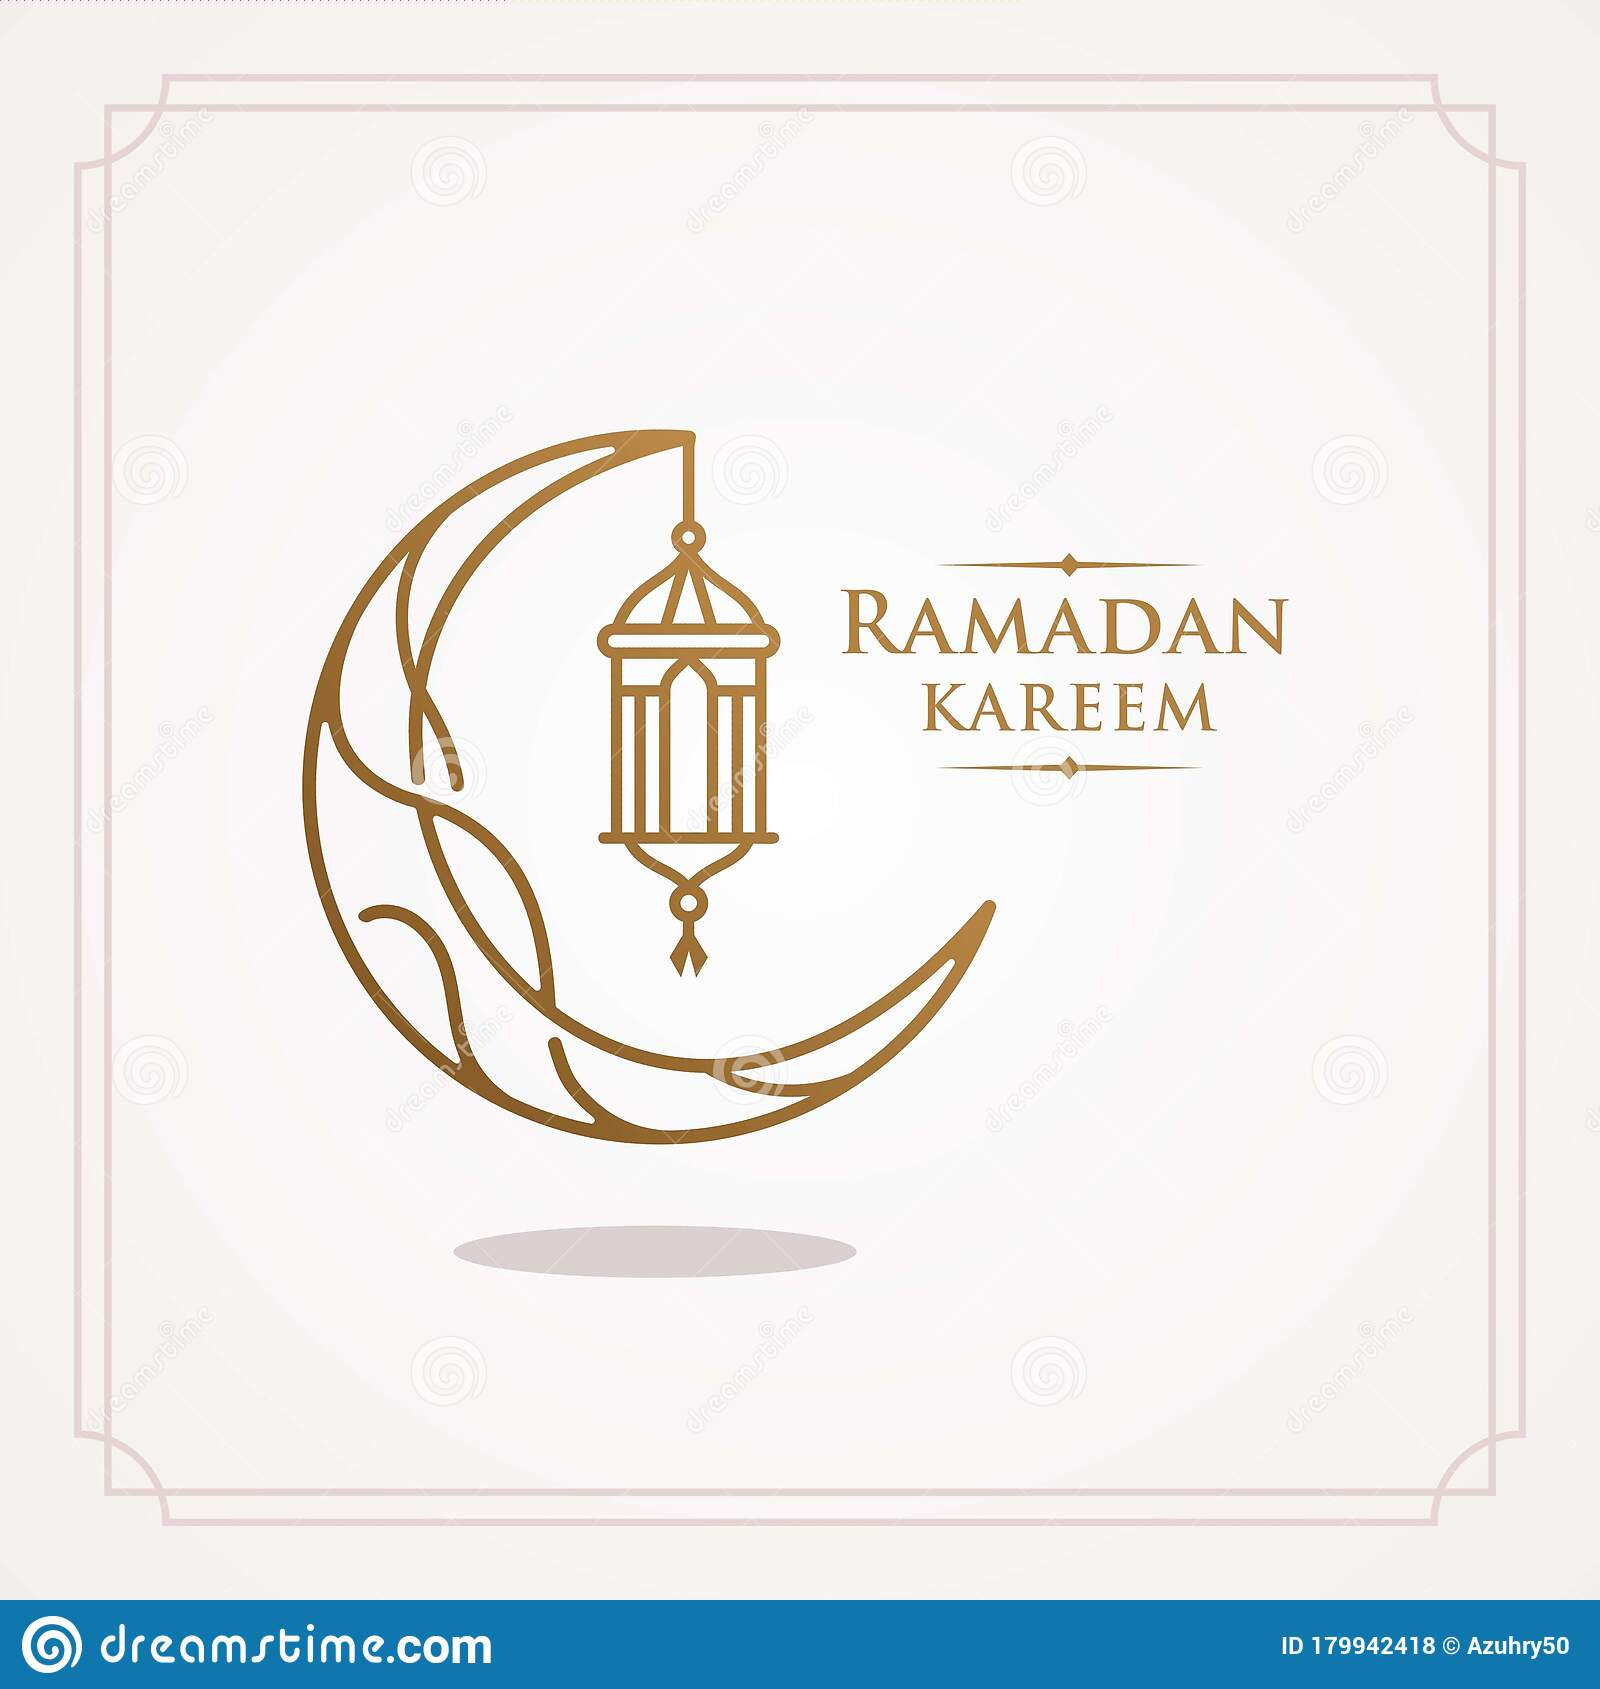 Ramadan Kareem Greeting Line Icon Minimal And Simple Vector Design With Beautiful Glowing Lantern And Elegant Crescent Moon Stock Vector Illustration Of Banner Flyer 179942418